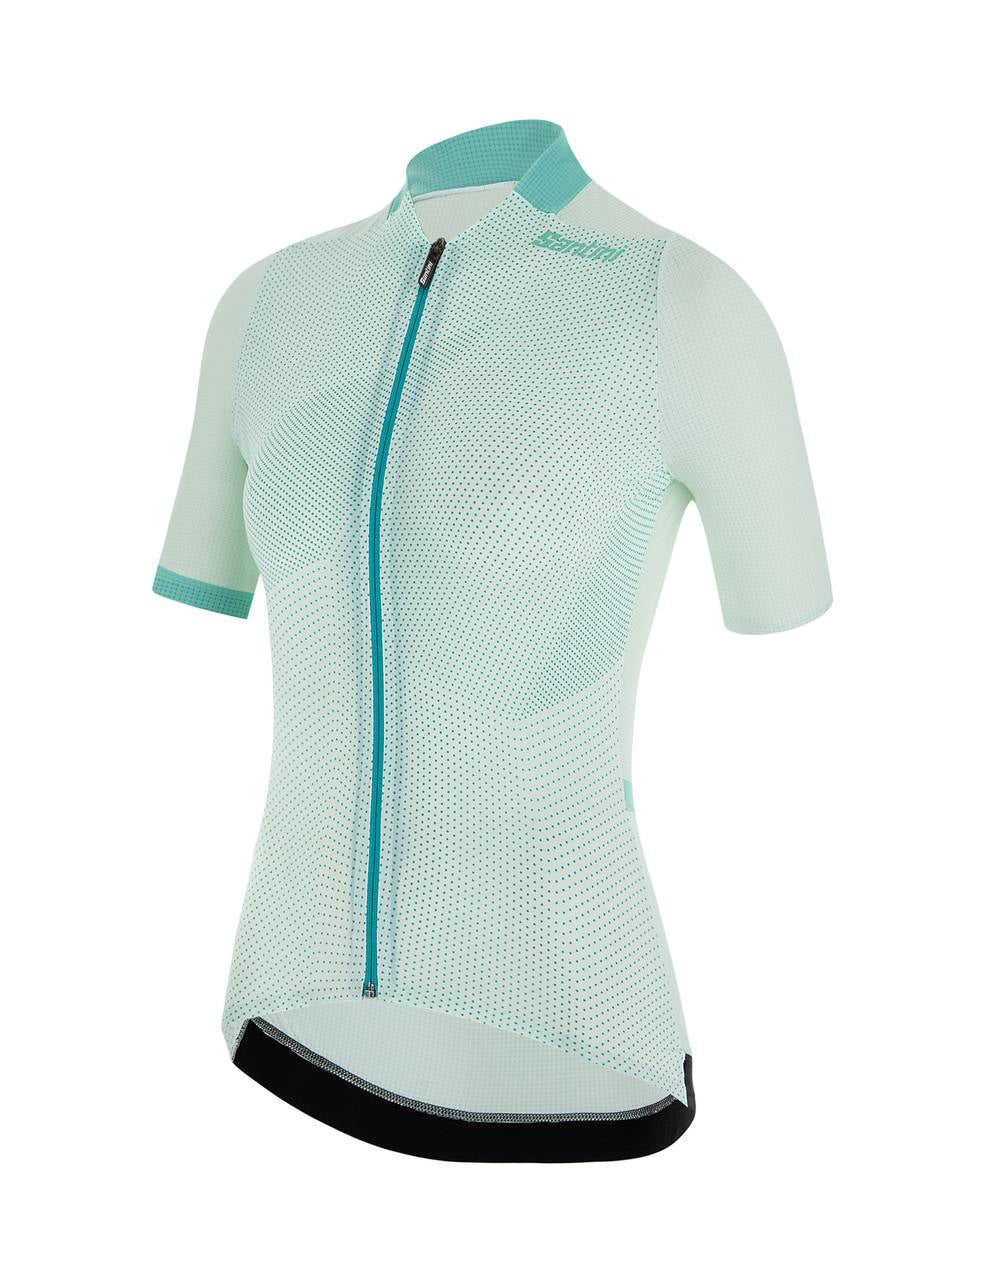 Santini Women's Redux Genio jersey, 2020 - Cycle Closet